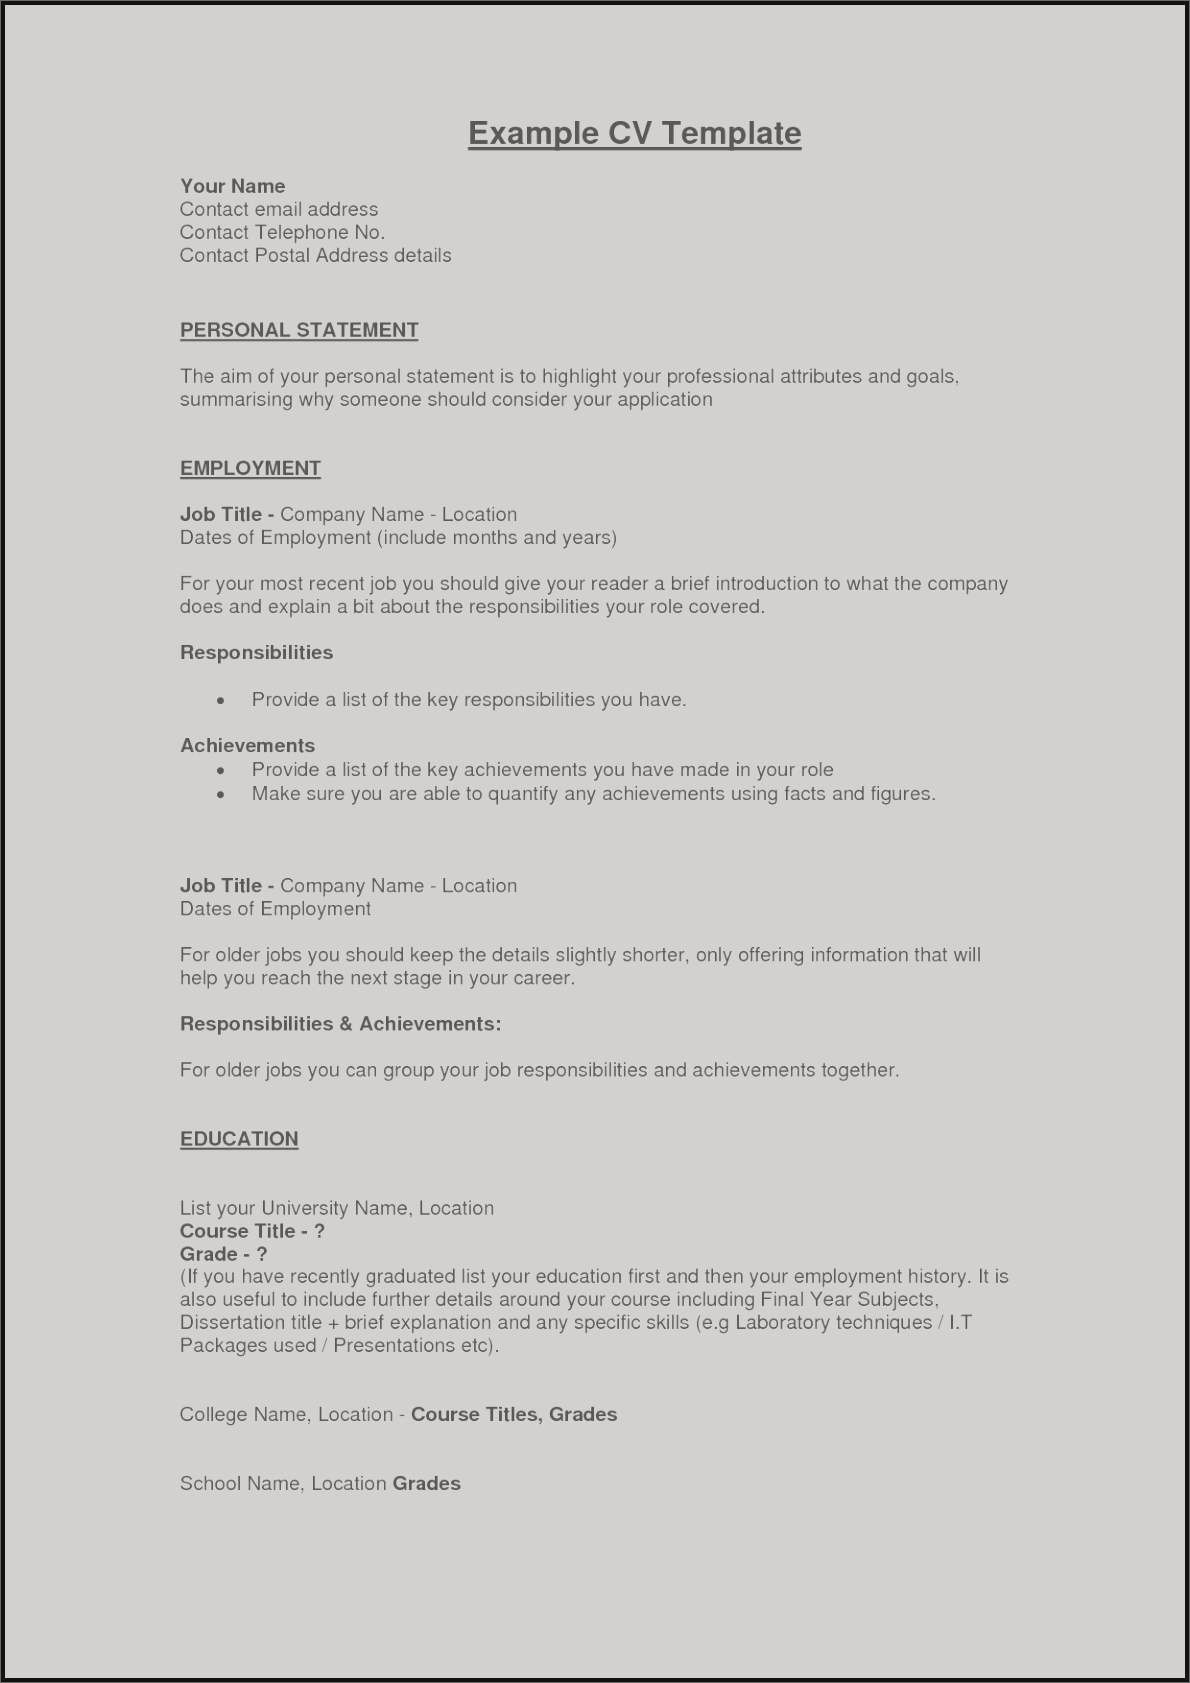 Do You Need A Resume for Your First Job - Cia Cover Letter New Resume for My First Job Unique Example Perfect